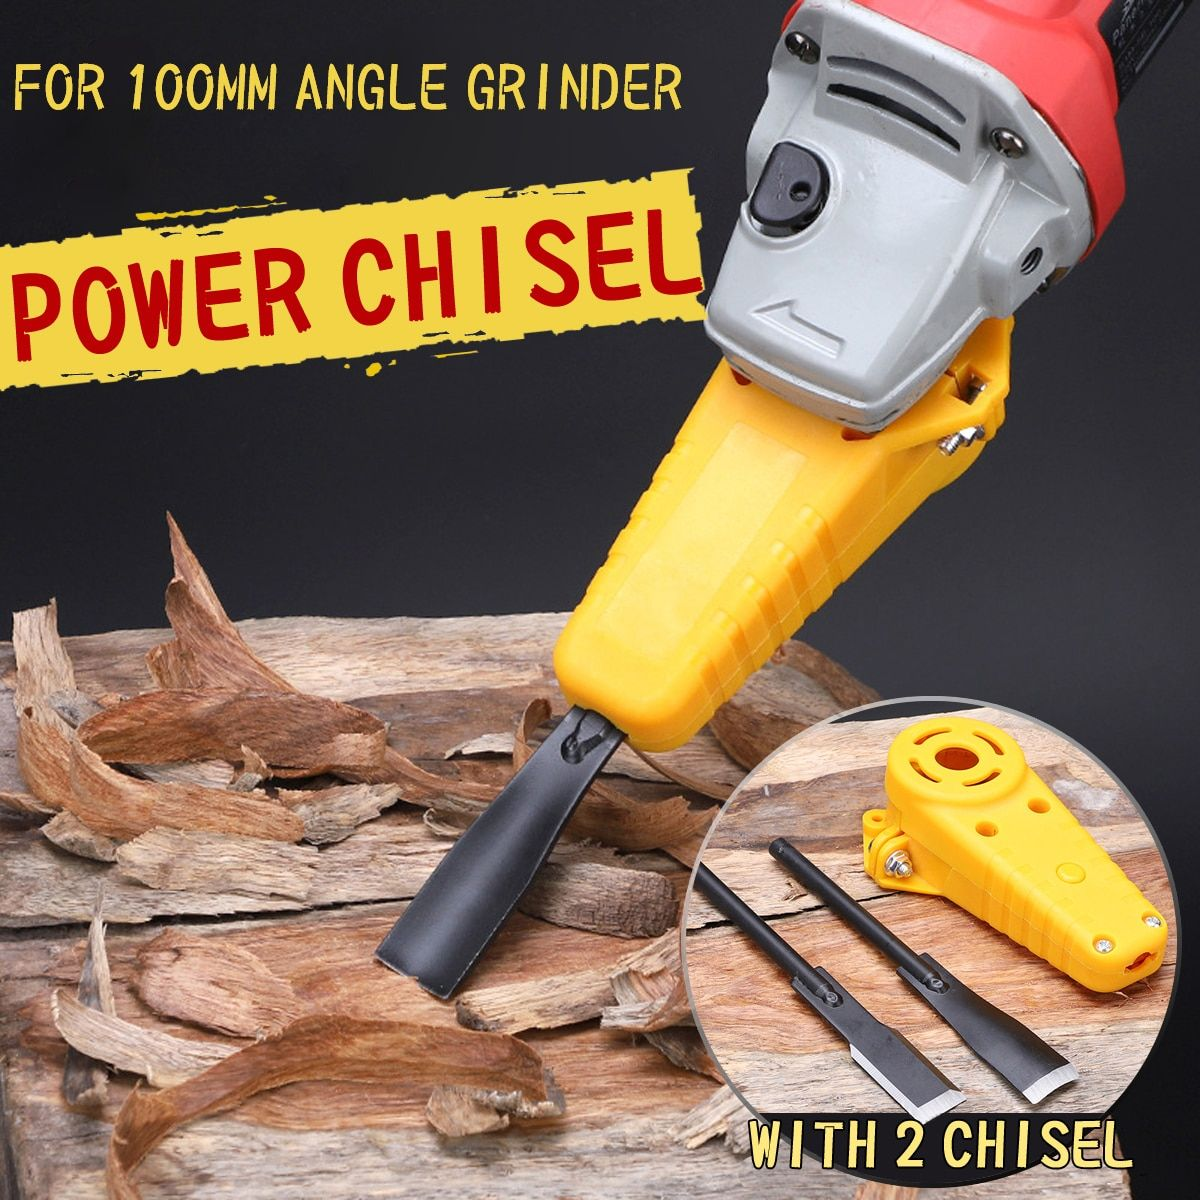 Drillpro Wood Carving Electric Chisel M10 Adapter Set Changed 100 Angle Grinder Into Power Chisel Woodworking Tool